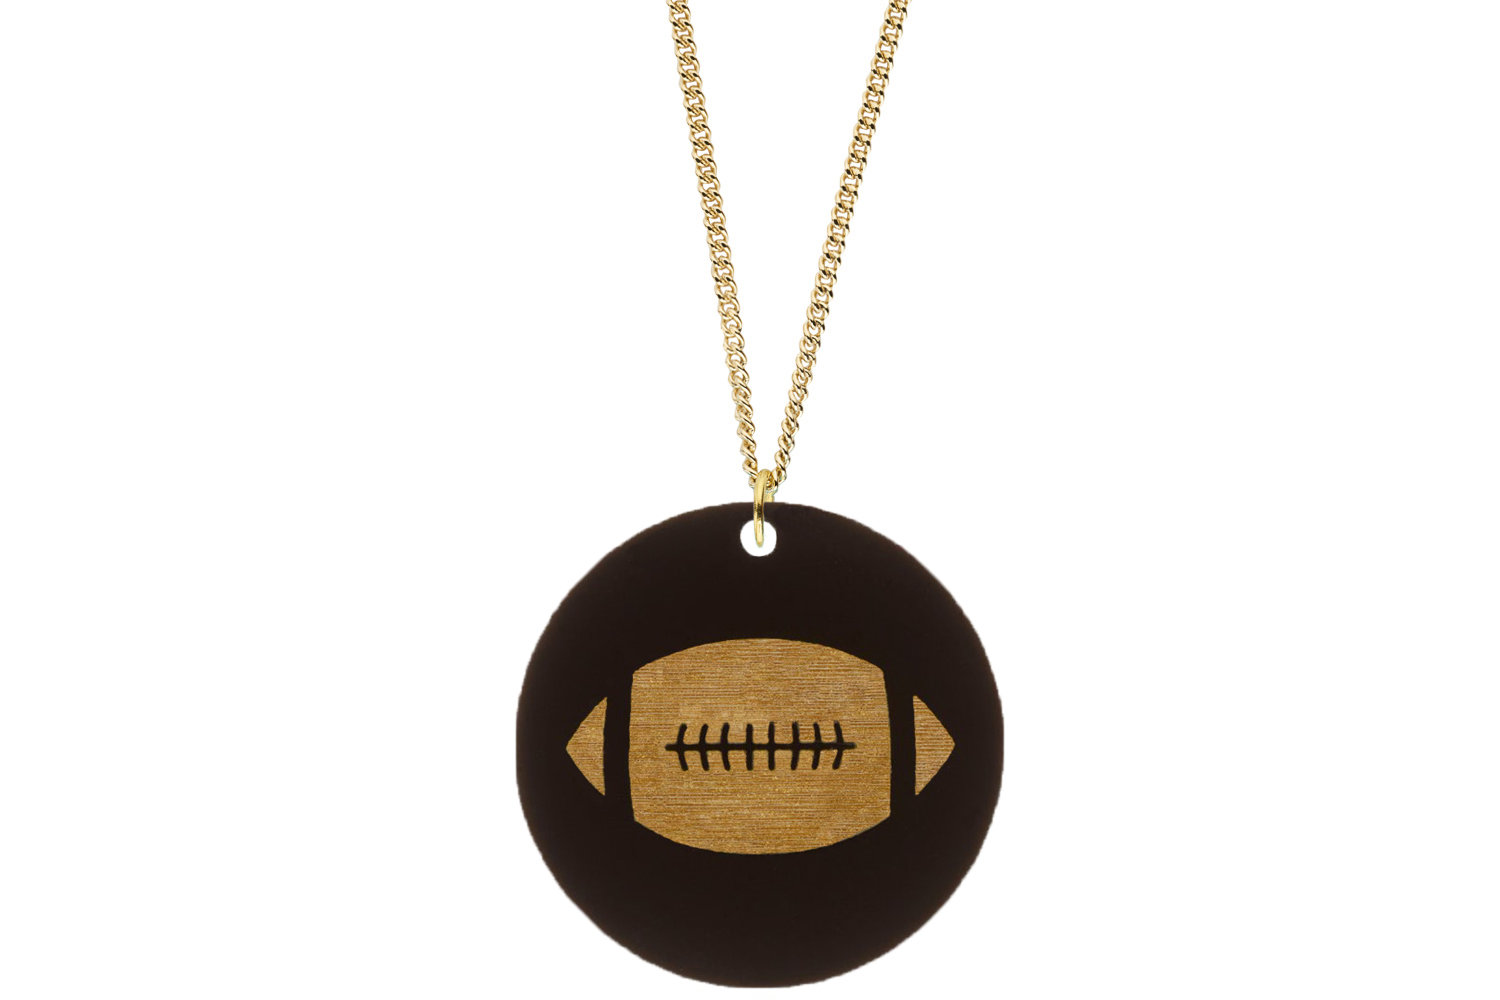 Football Pendant Subtle Style Refined with Paint on Chain Necklace